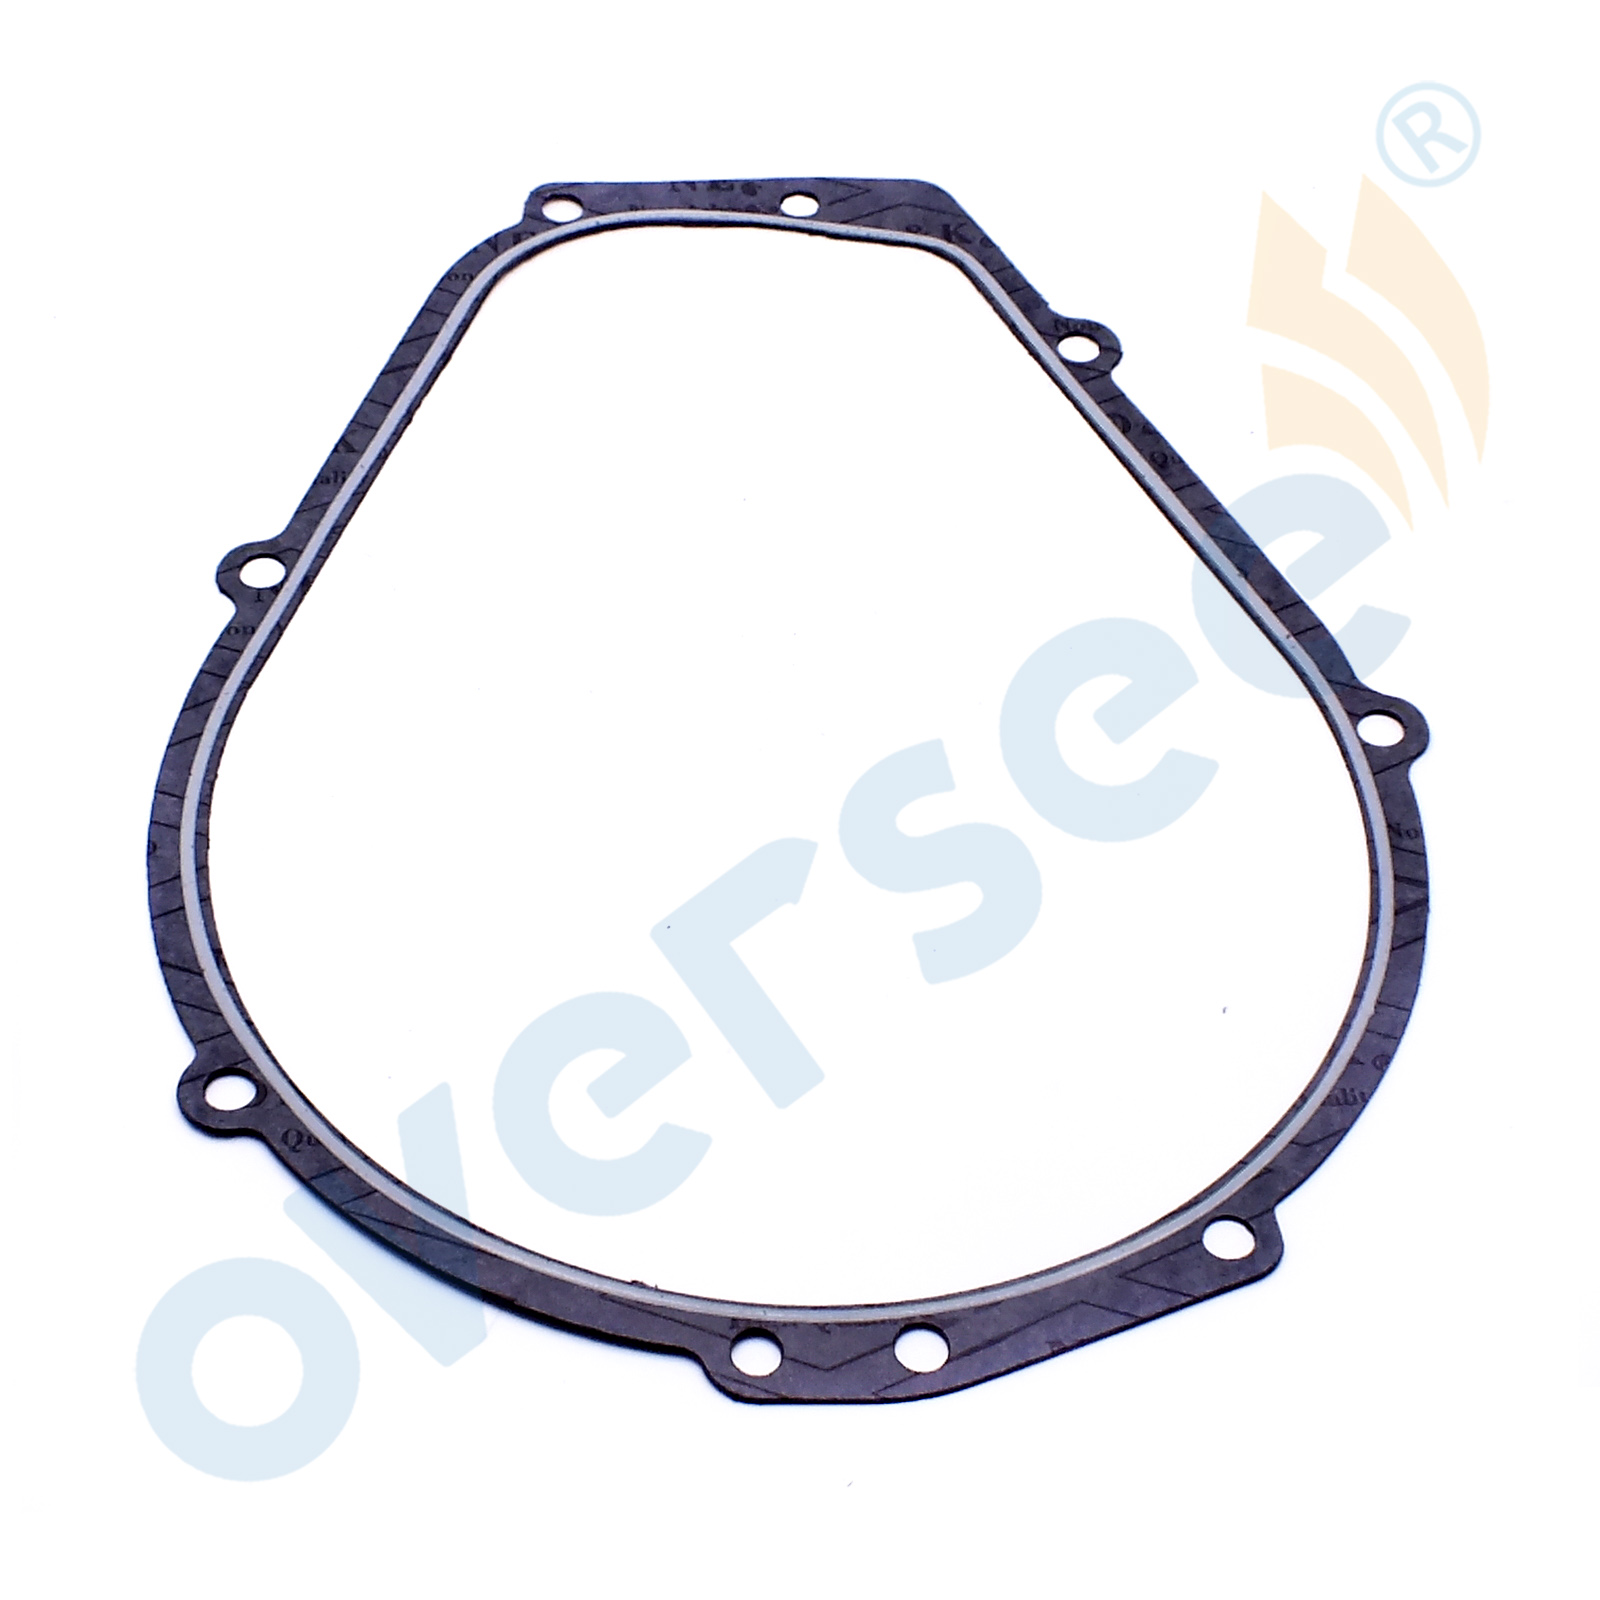 Boat Motor 6M6-81365-A0 Hole Cover Gasket For Yamaha 6M681365A000 6M6-81365-A0-00